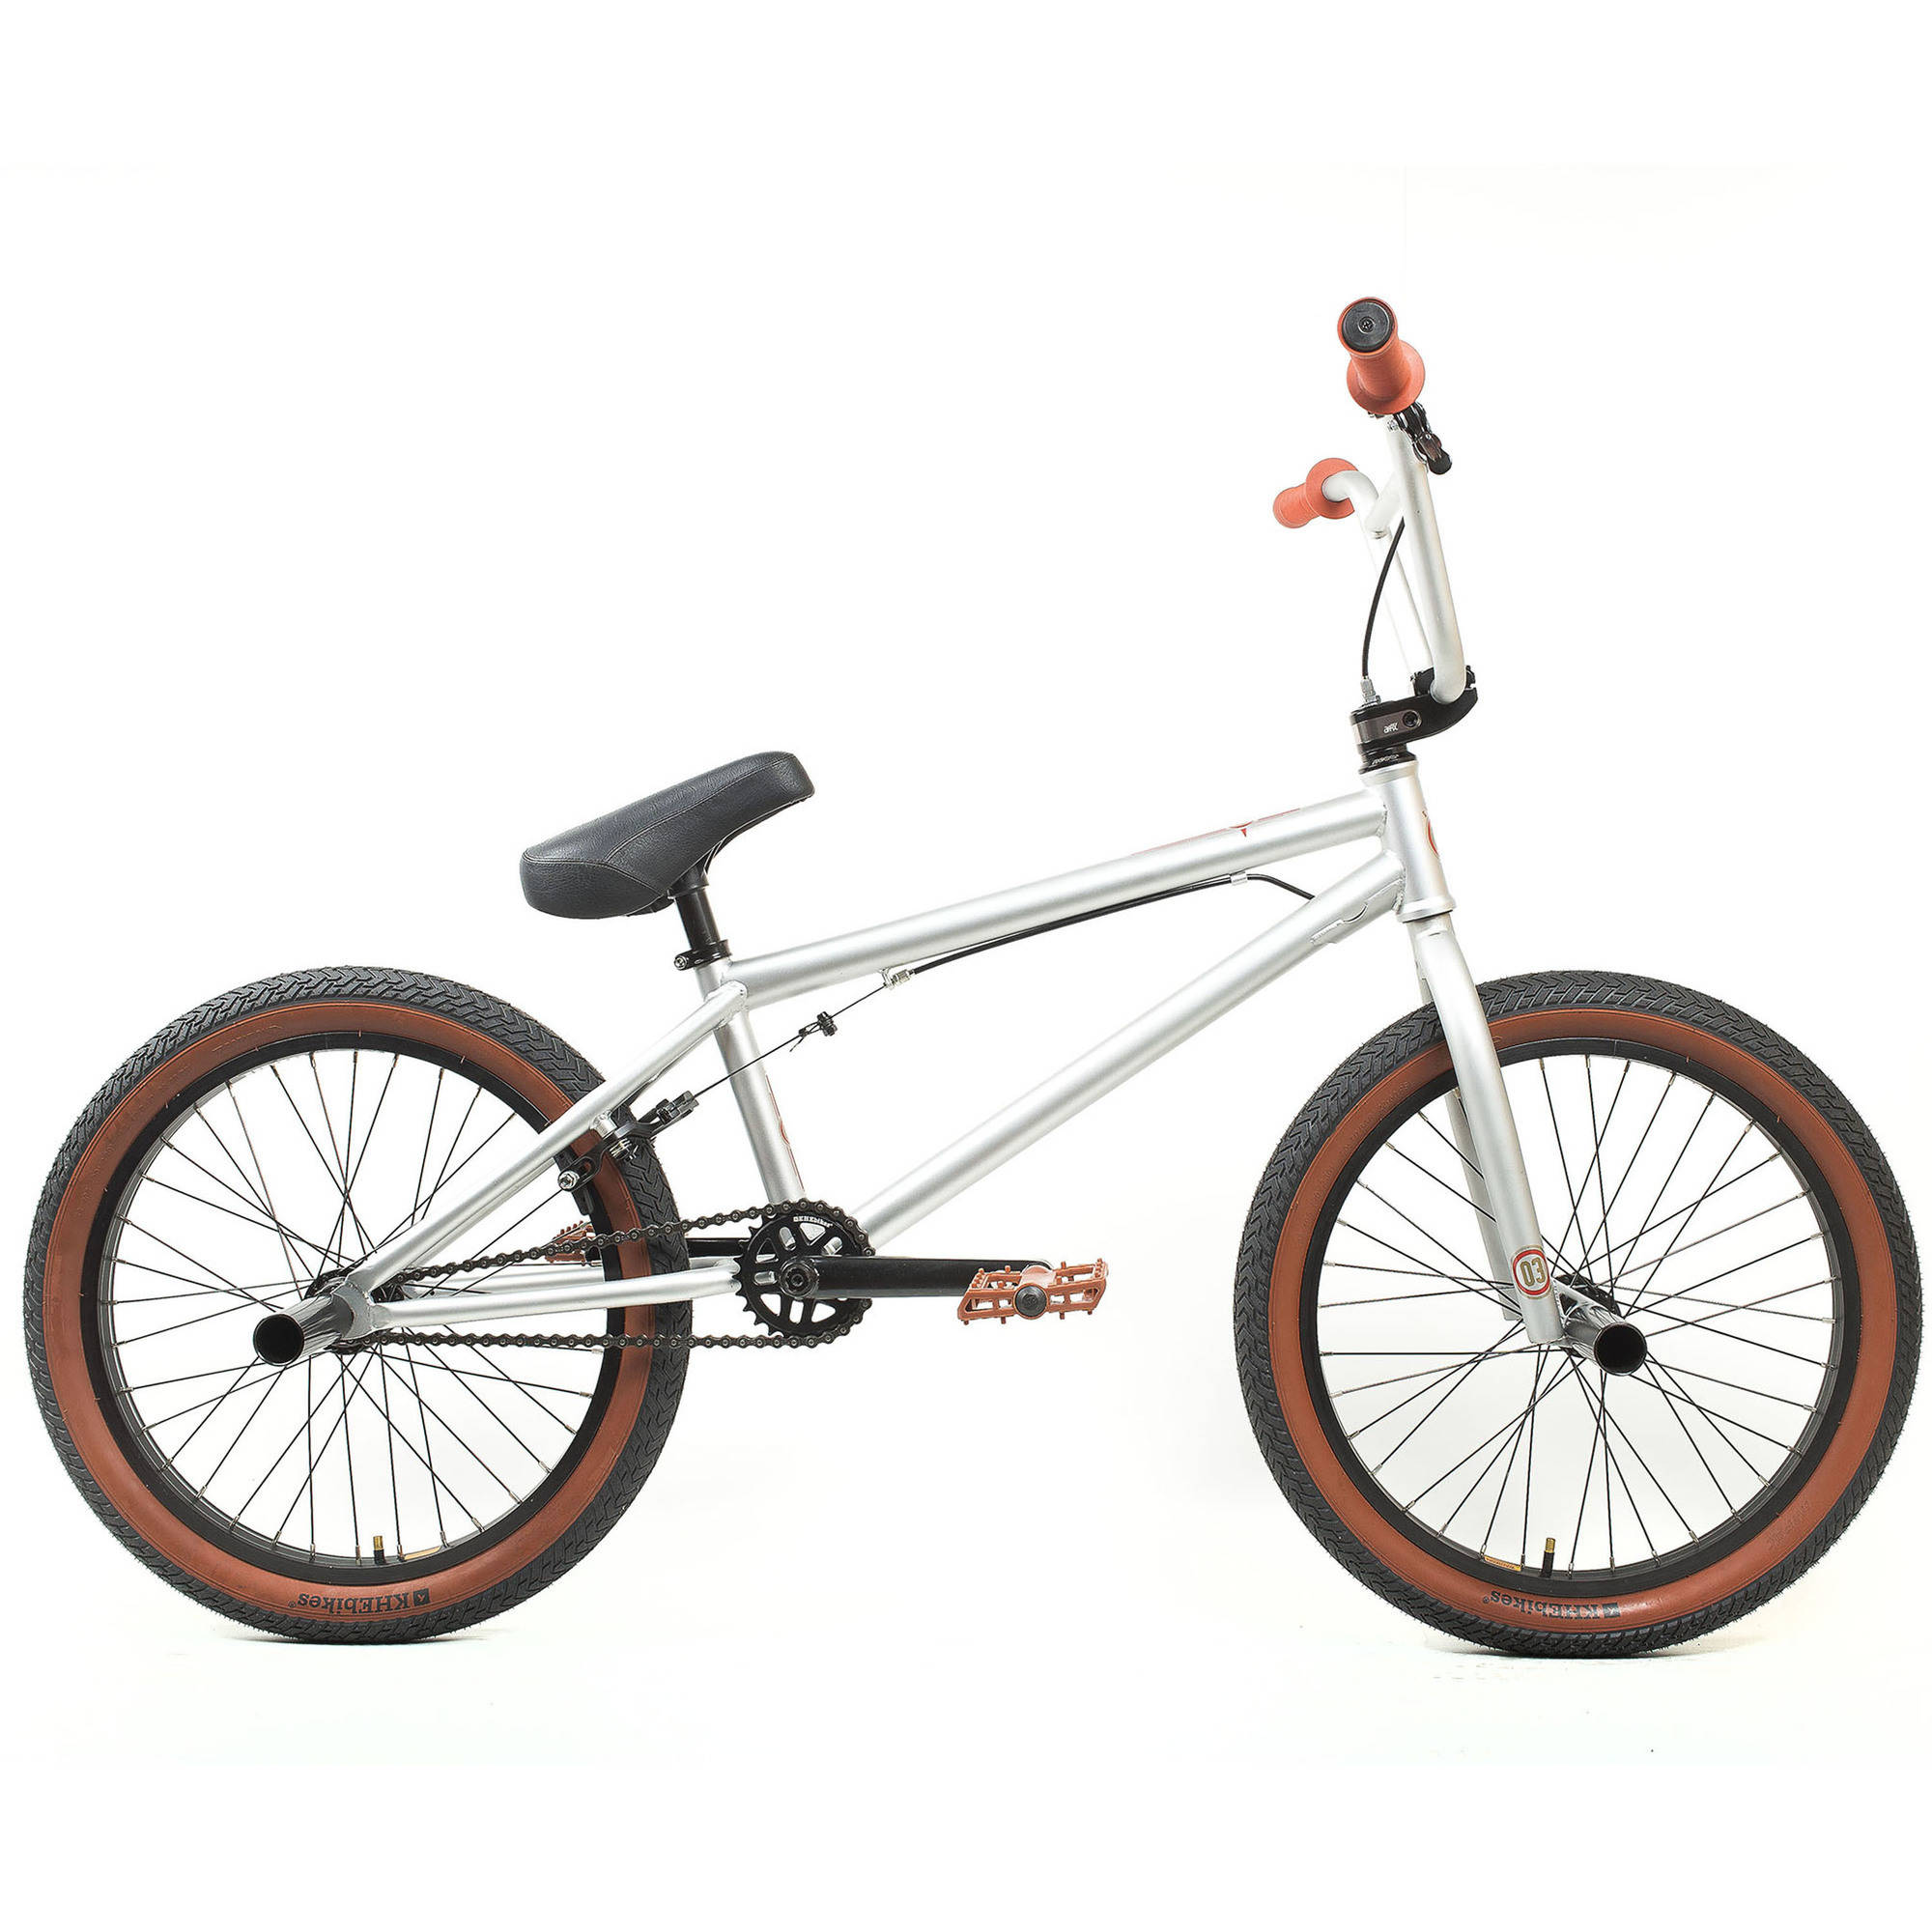 KHE Evo 0.3 BMX Bicycle by Cycle Force Group